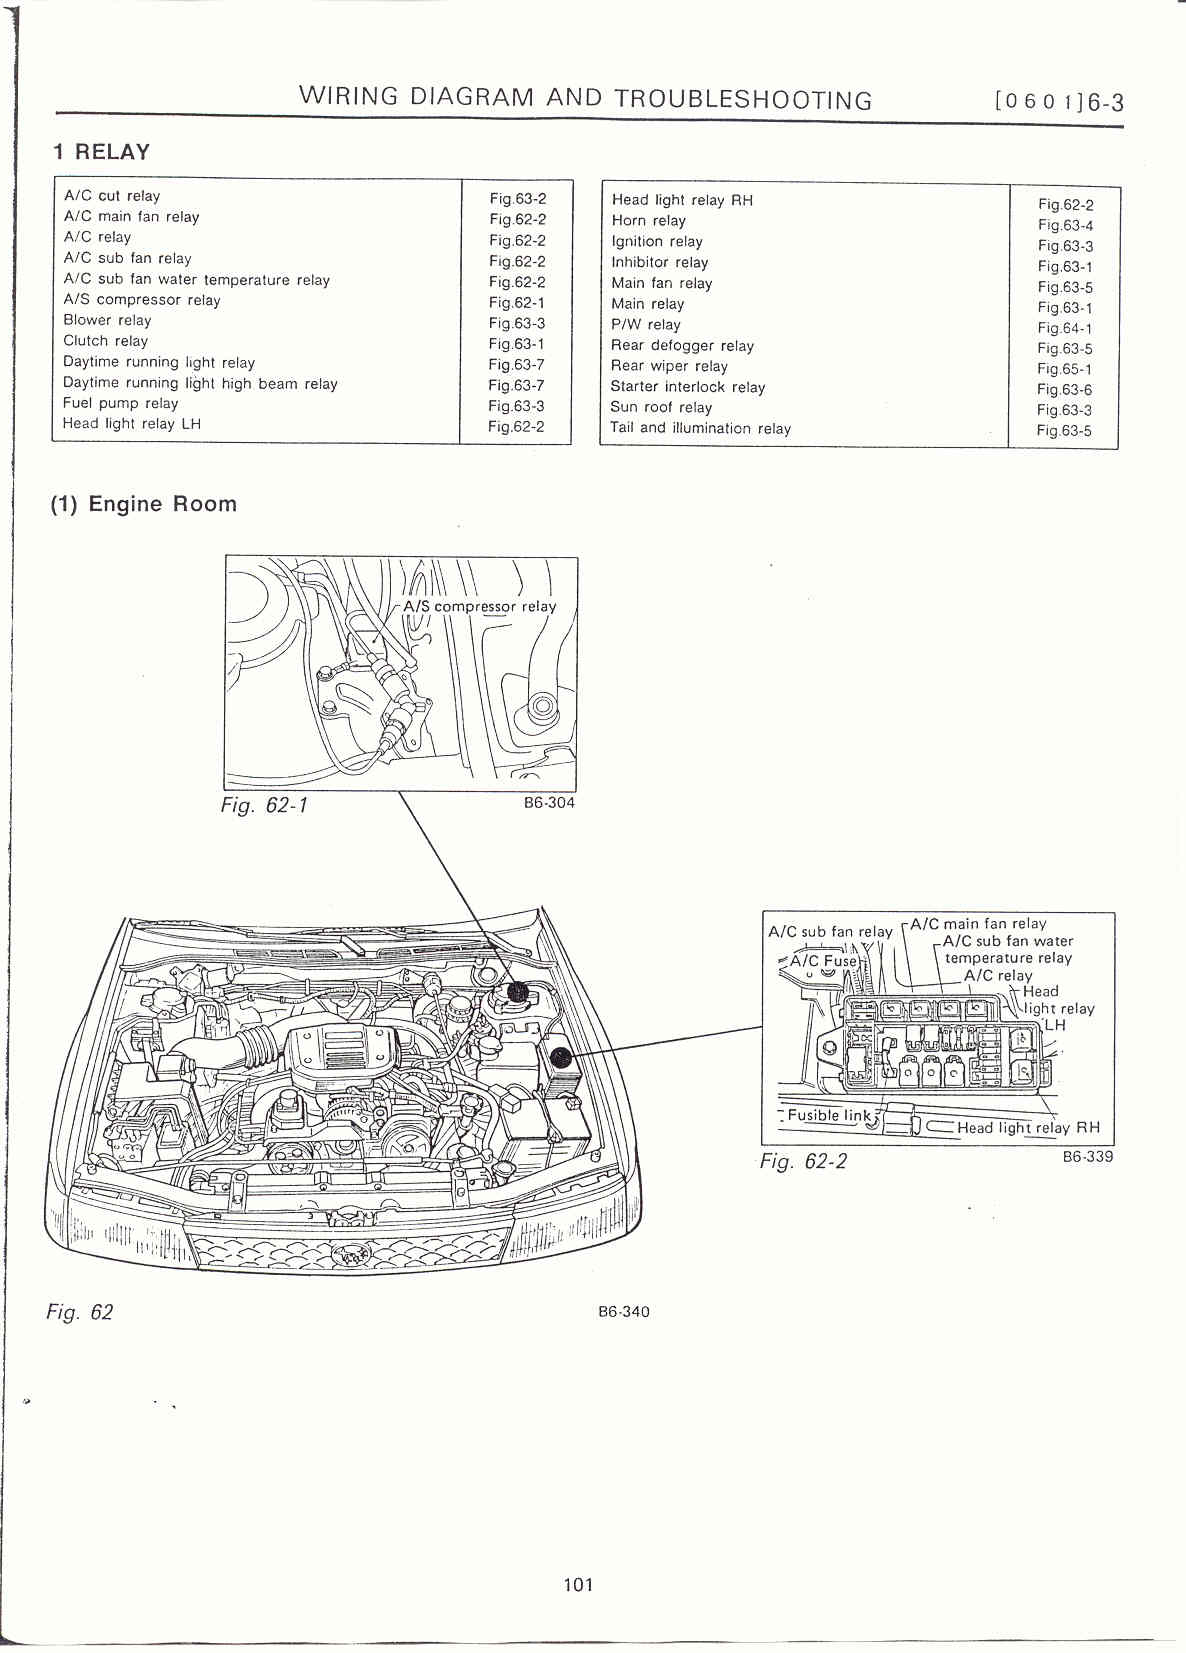 1994 Subaru Legacy Fuel Relay Wiring Diagram Explore Schematic 2007 Surrealmirage Swap Electrical Info Notes Rh Com 1998